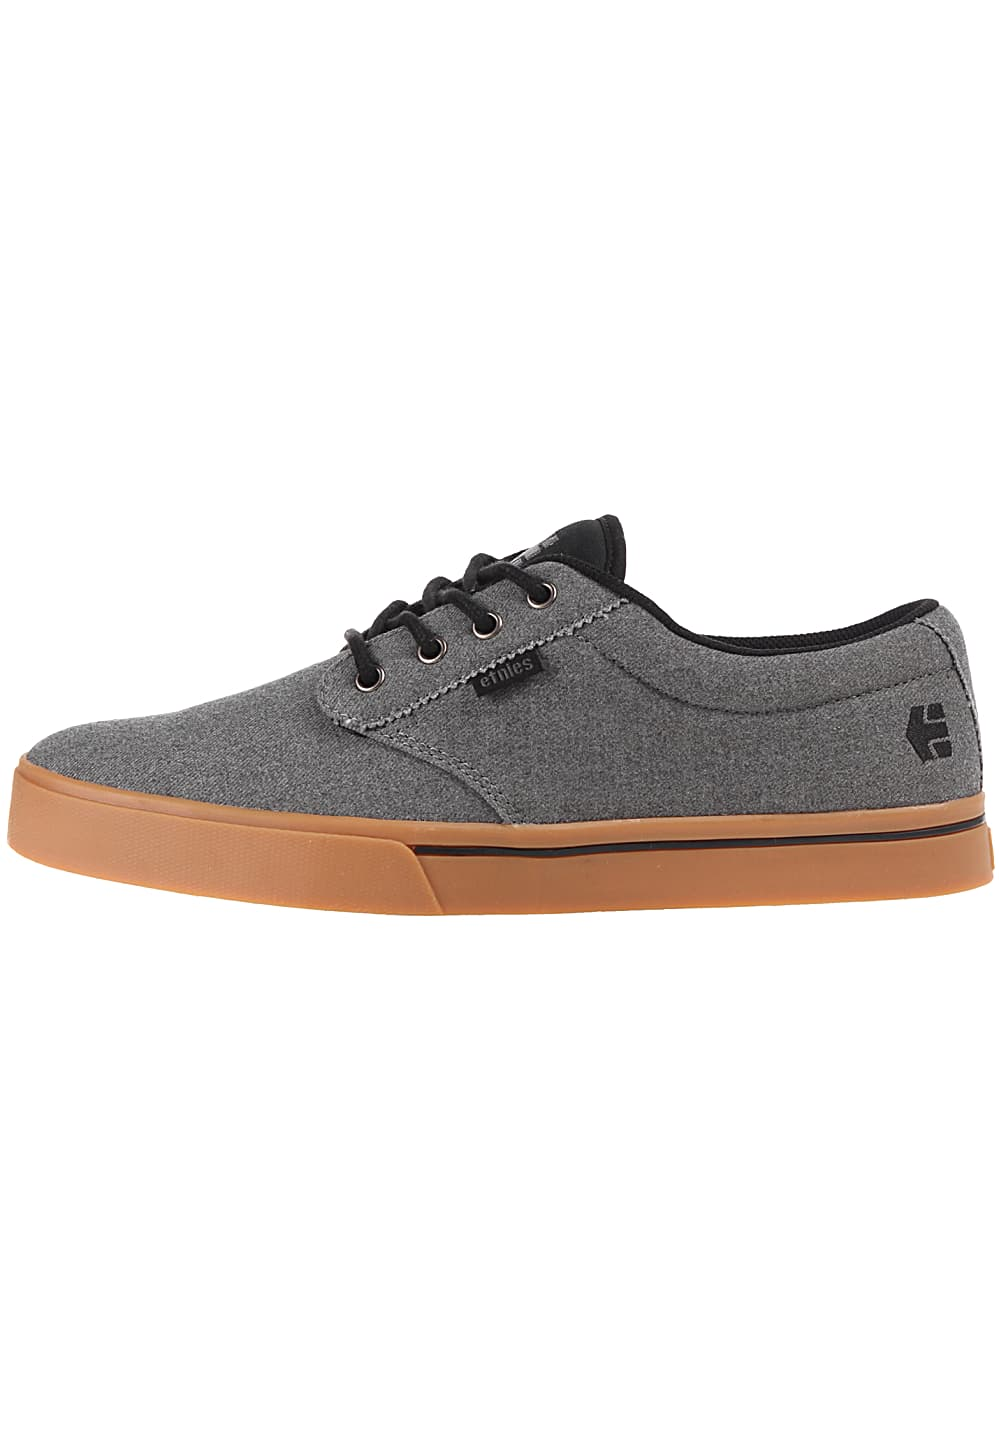 Planet Sports 2 Eco Etnies Voor Heren Grijs Jameson Sneakers PnwOZN80kX